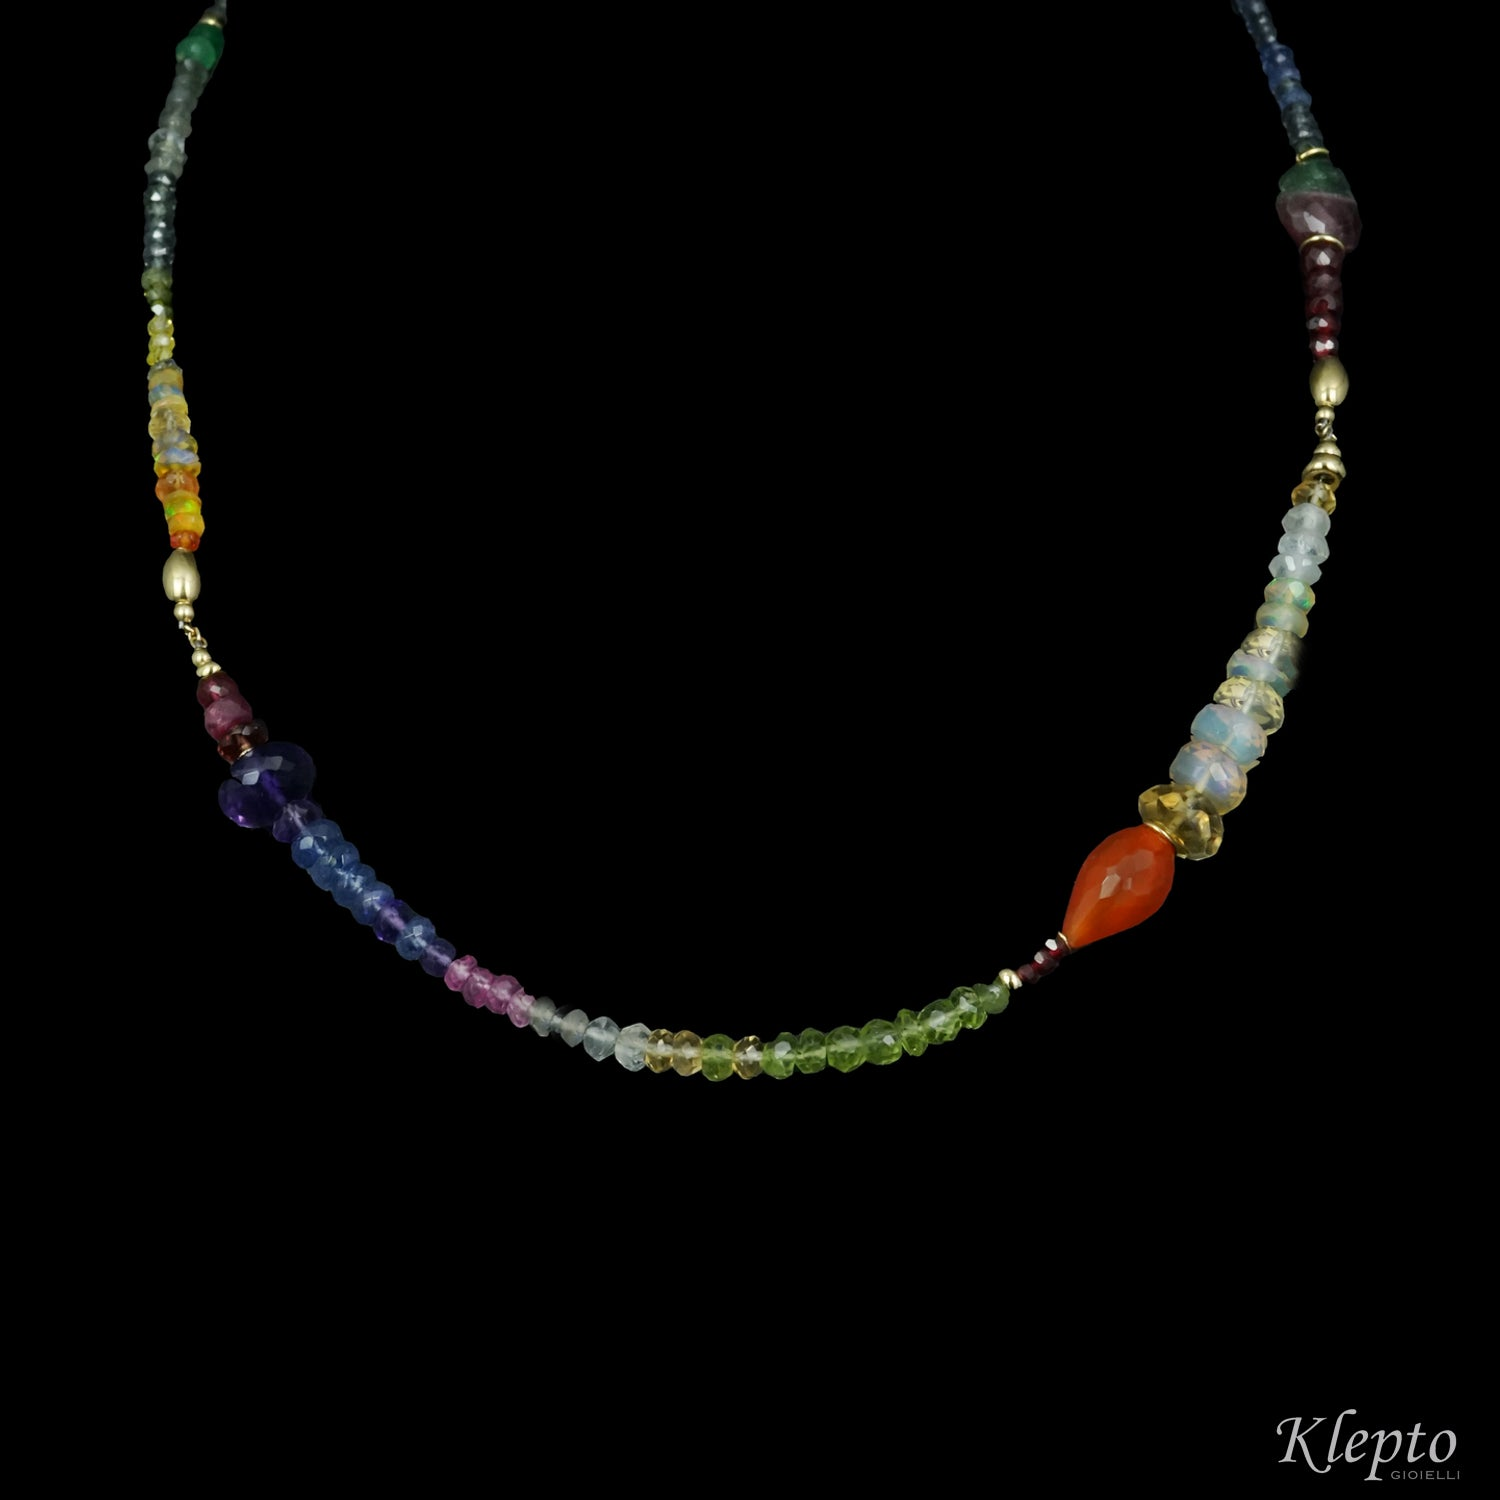 Short Rainbow necklace